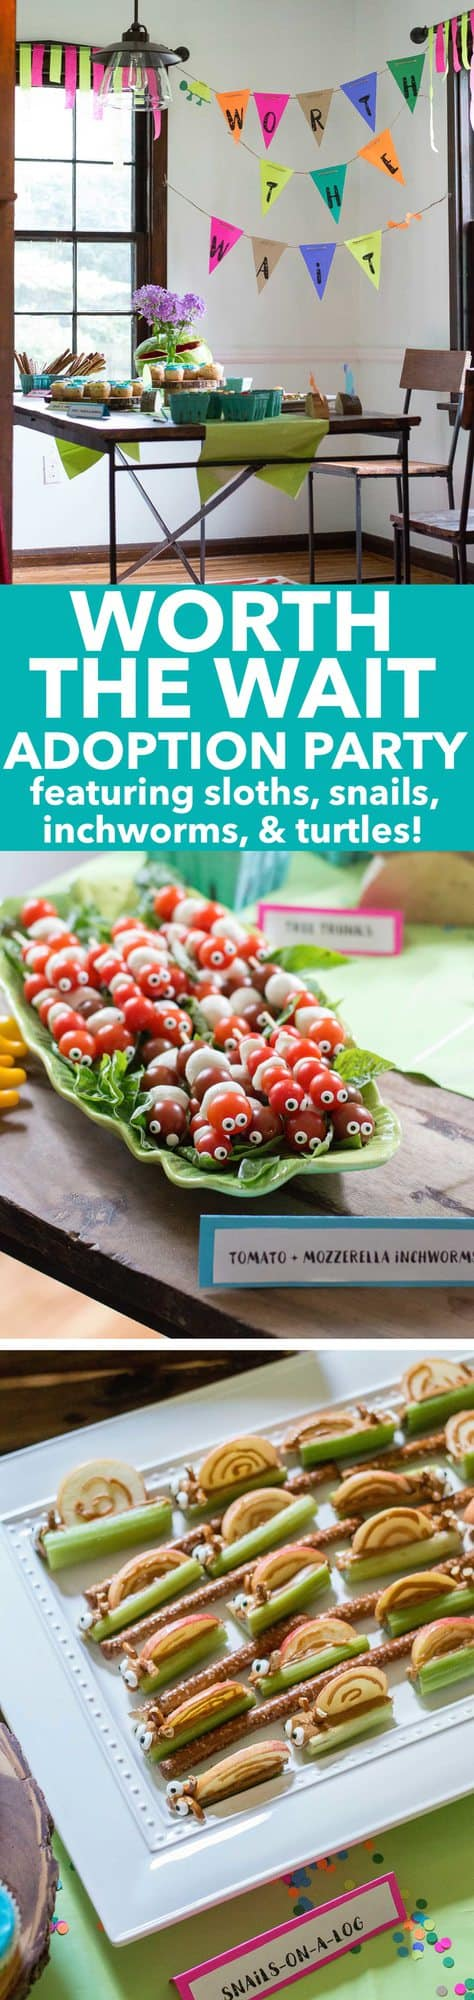 Worth the wait theme adoption party! Featuring slow animals - sloths, inchworms, turtles and snails! Tons of cute food ideas!